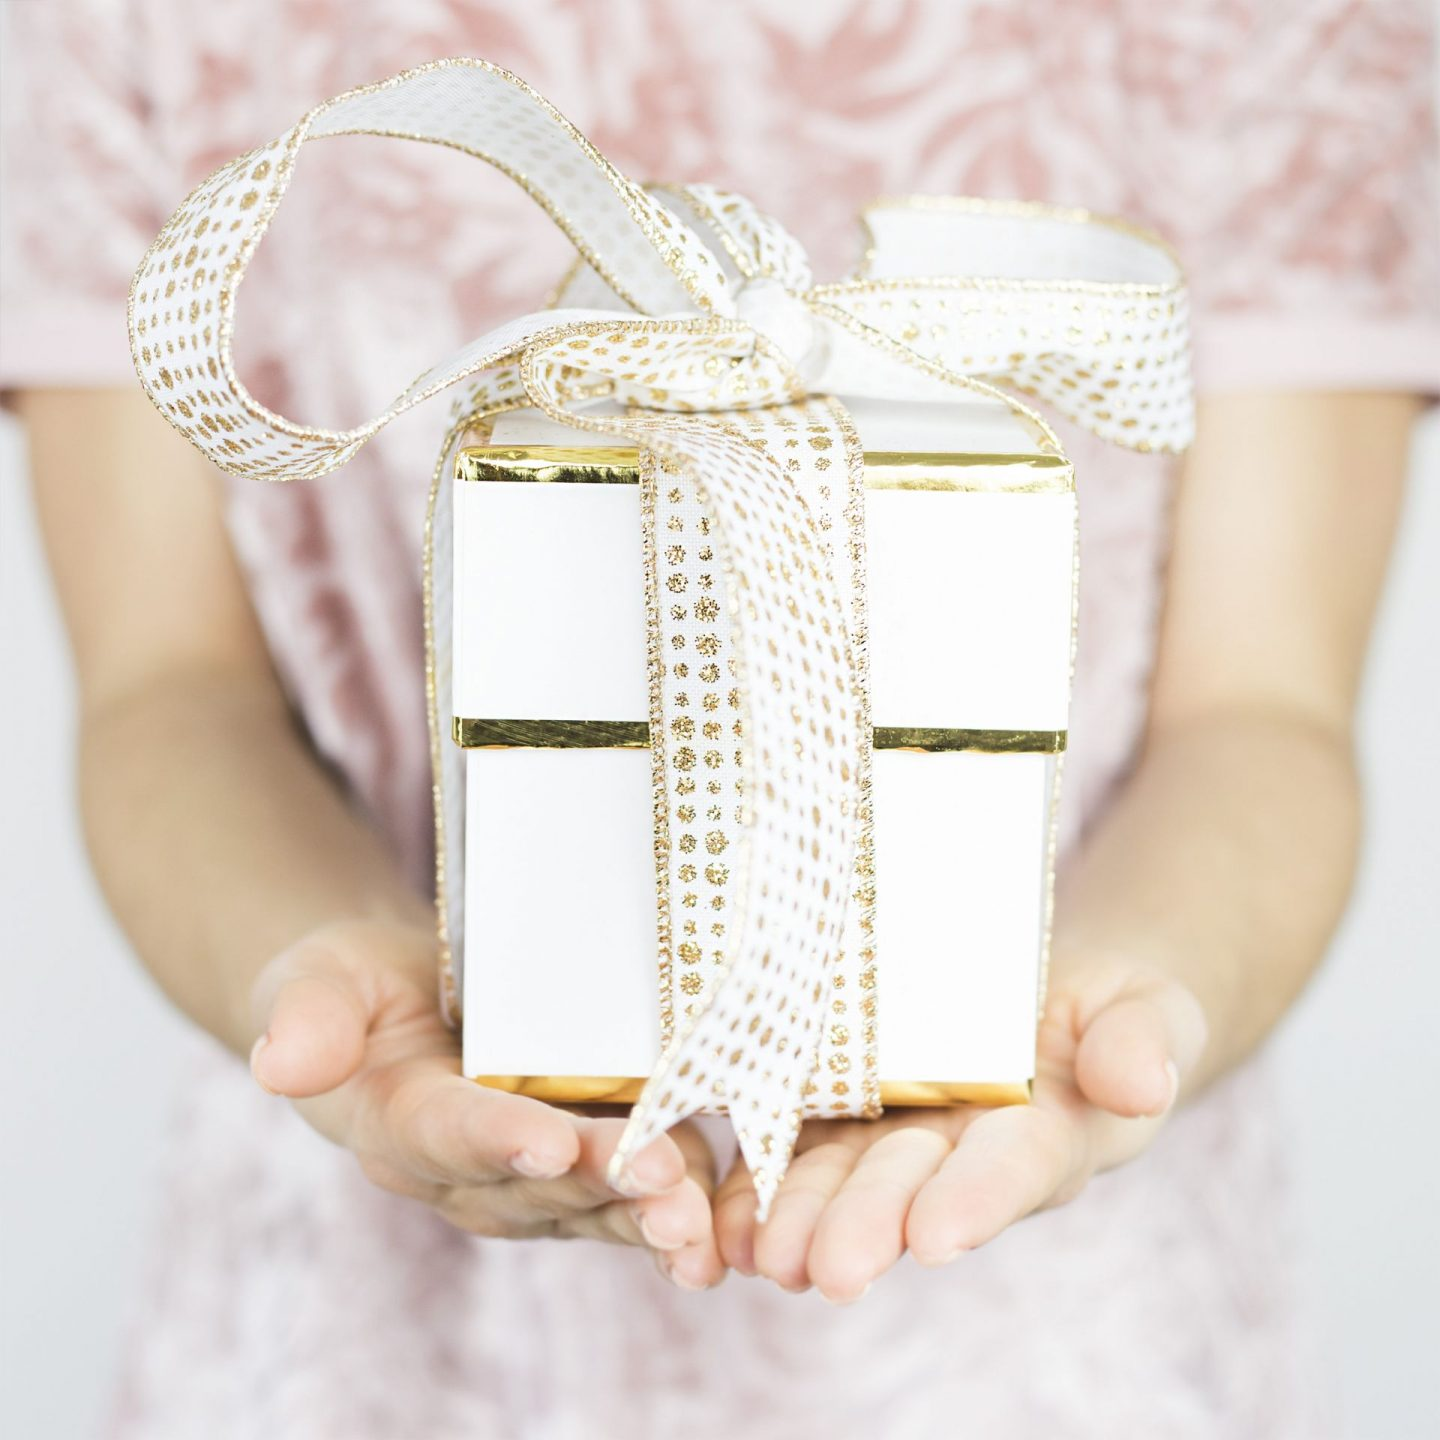 Mother's Day Gift Guide // Mother's Day Gift Ideas // Gift Ideas for Her // Affordable Gift Ideas for Women   Beauty With Lily #giftideas #mothersdaygifts